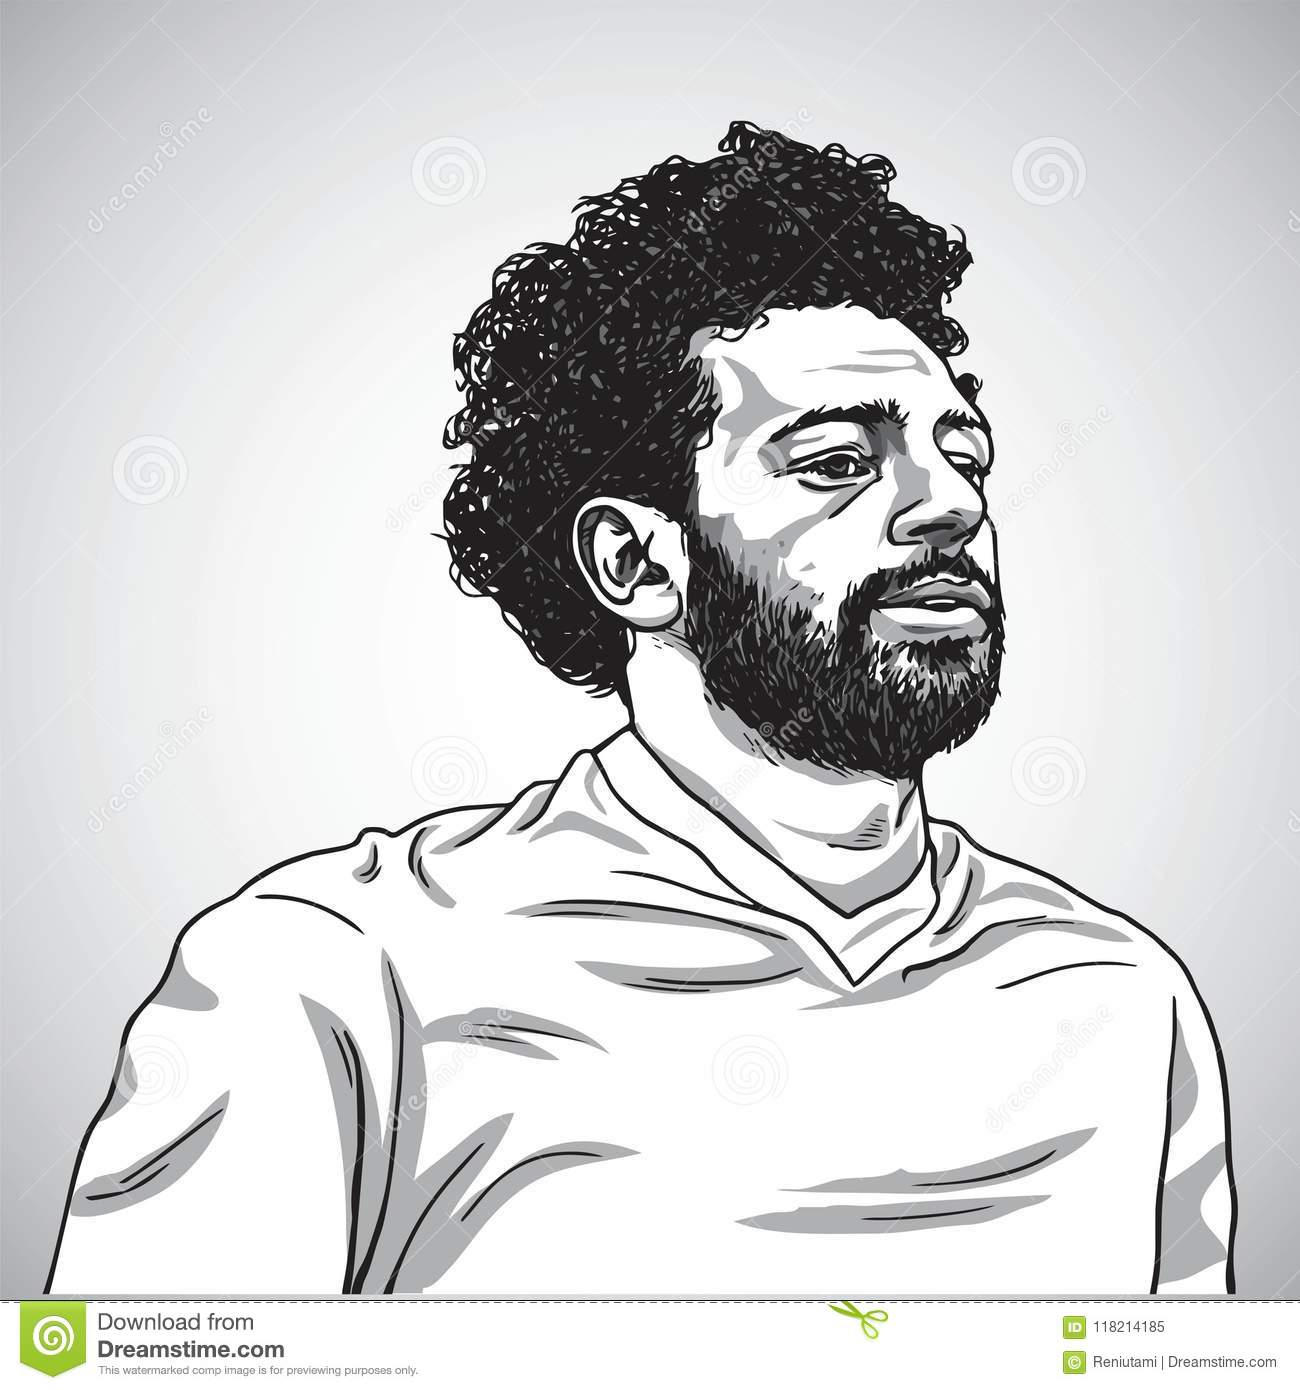 Drawing Of Mo Salah Vector Portrait Cartoon Caricature Illustration June 5 2018 Editorial Image Illustration Of Mohamed Icon 118214185